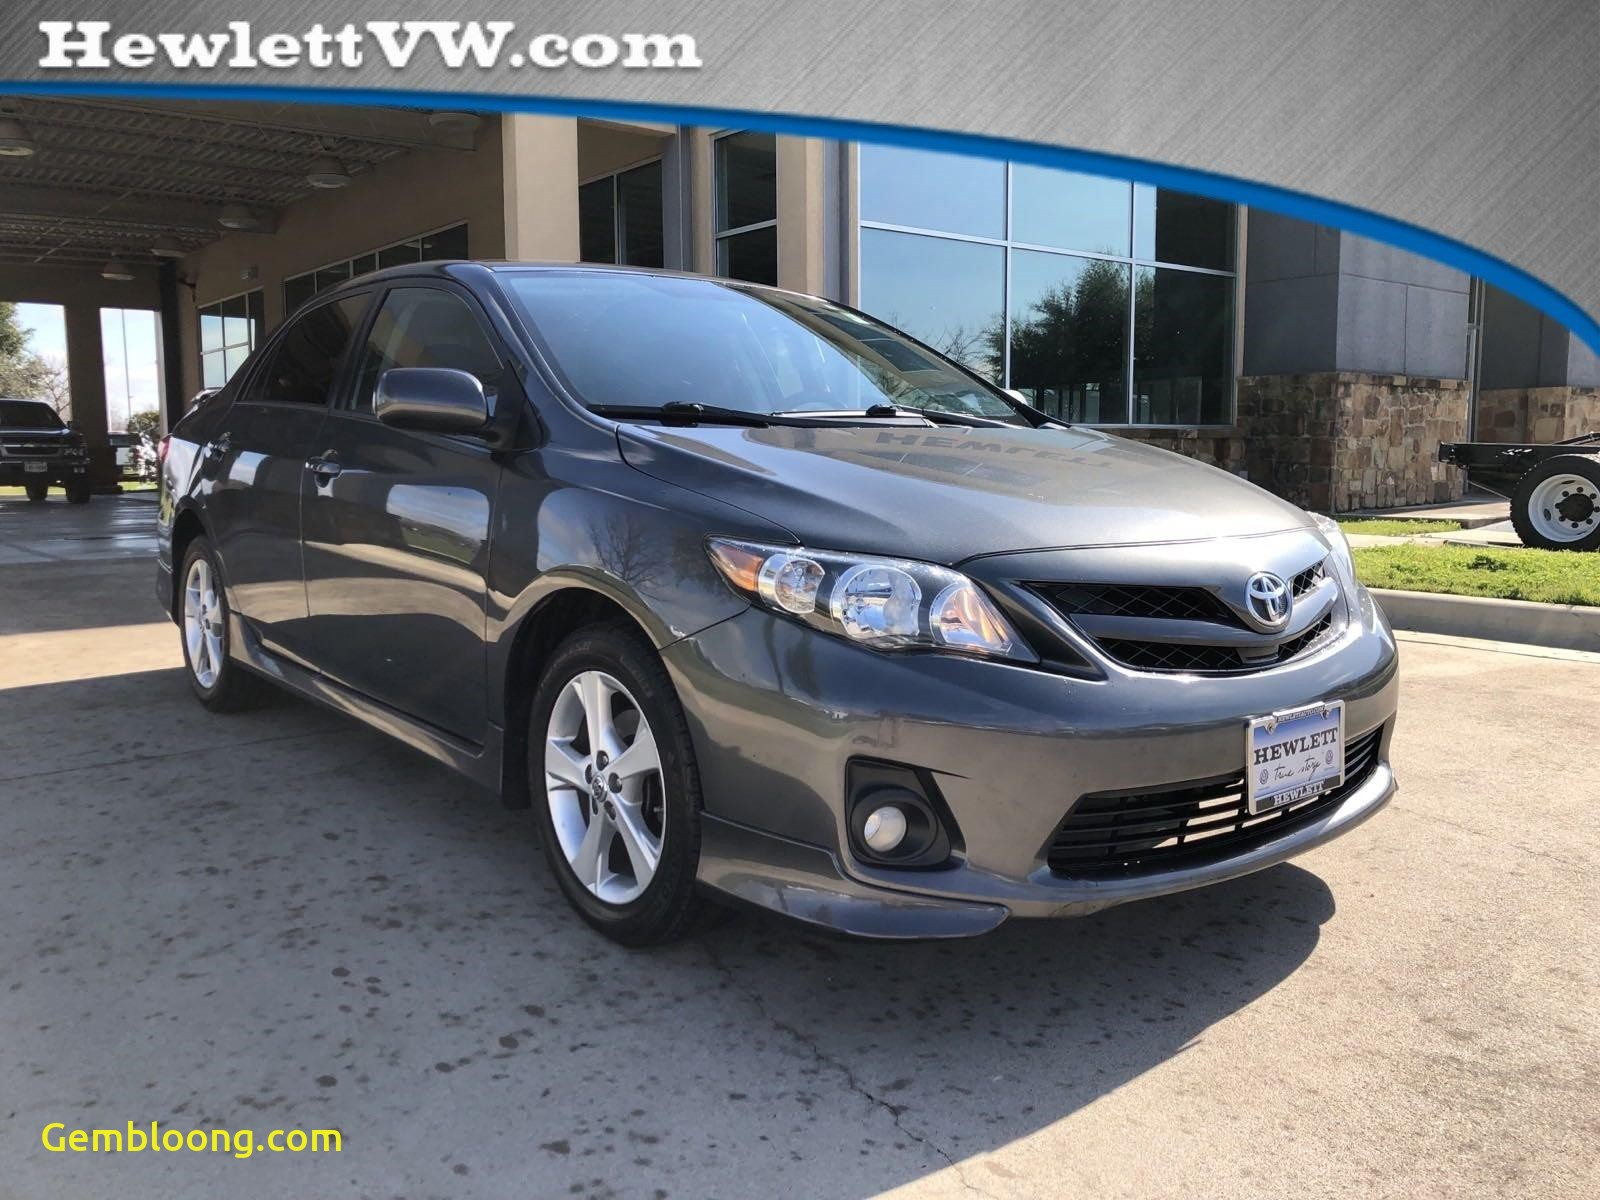 Cars for Sale Under 10000 Austin Tx Fresh Used toyota Sienna for Sale Near Me Geor Own to Austin Tx